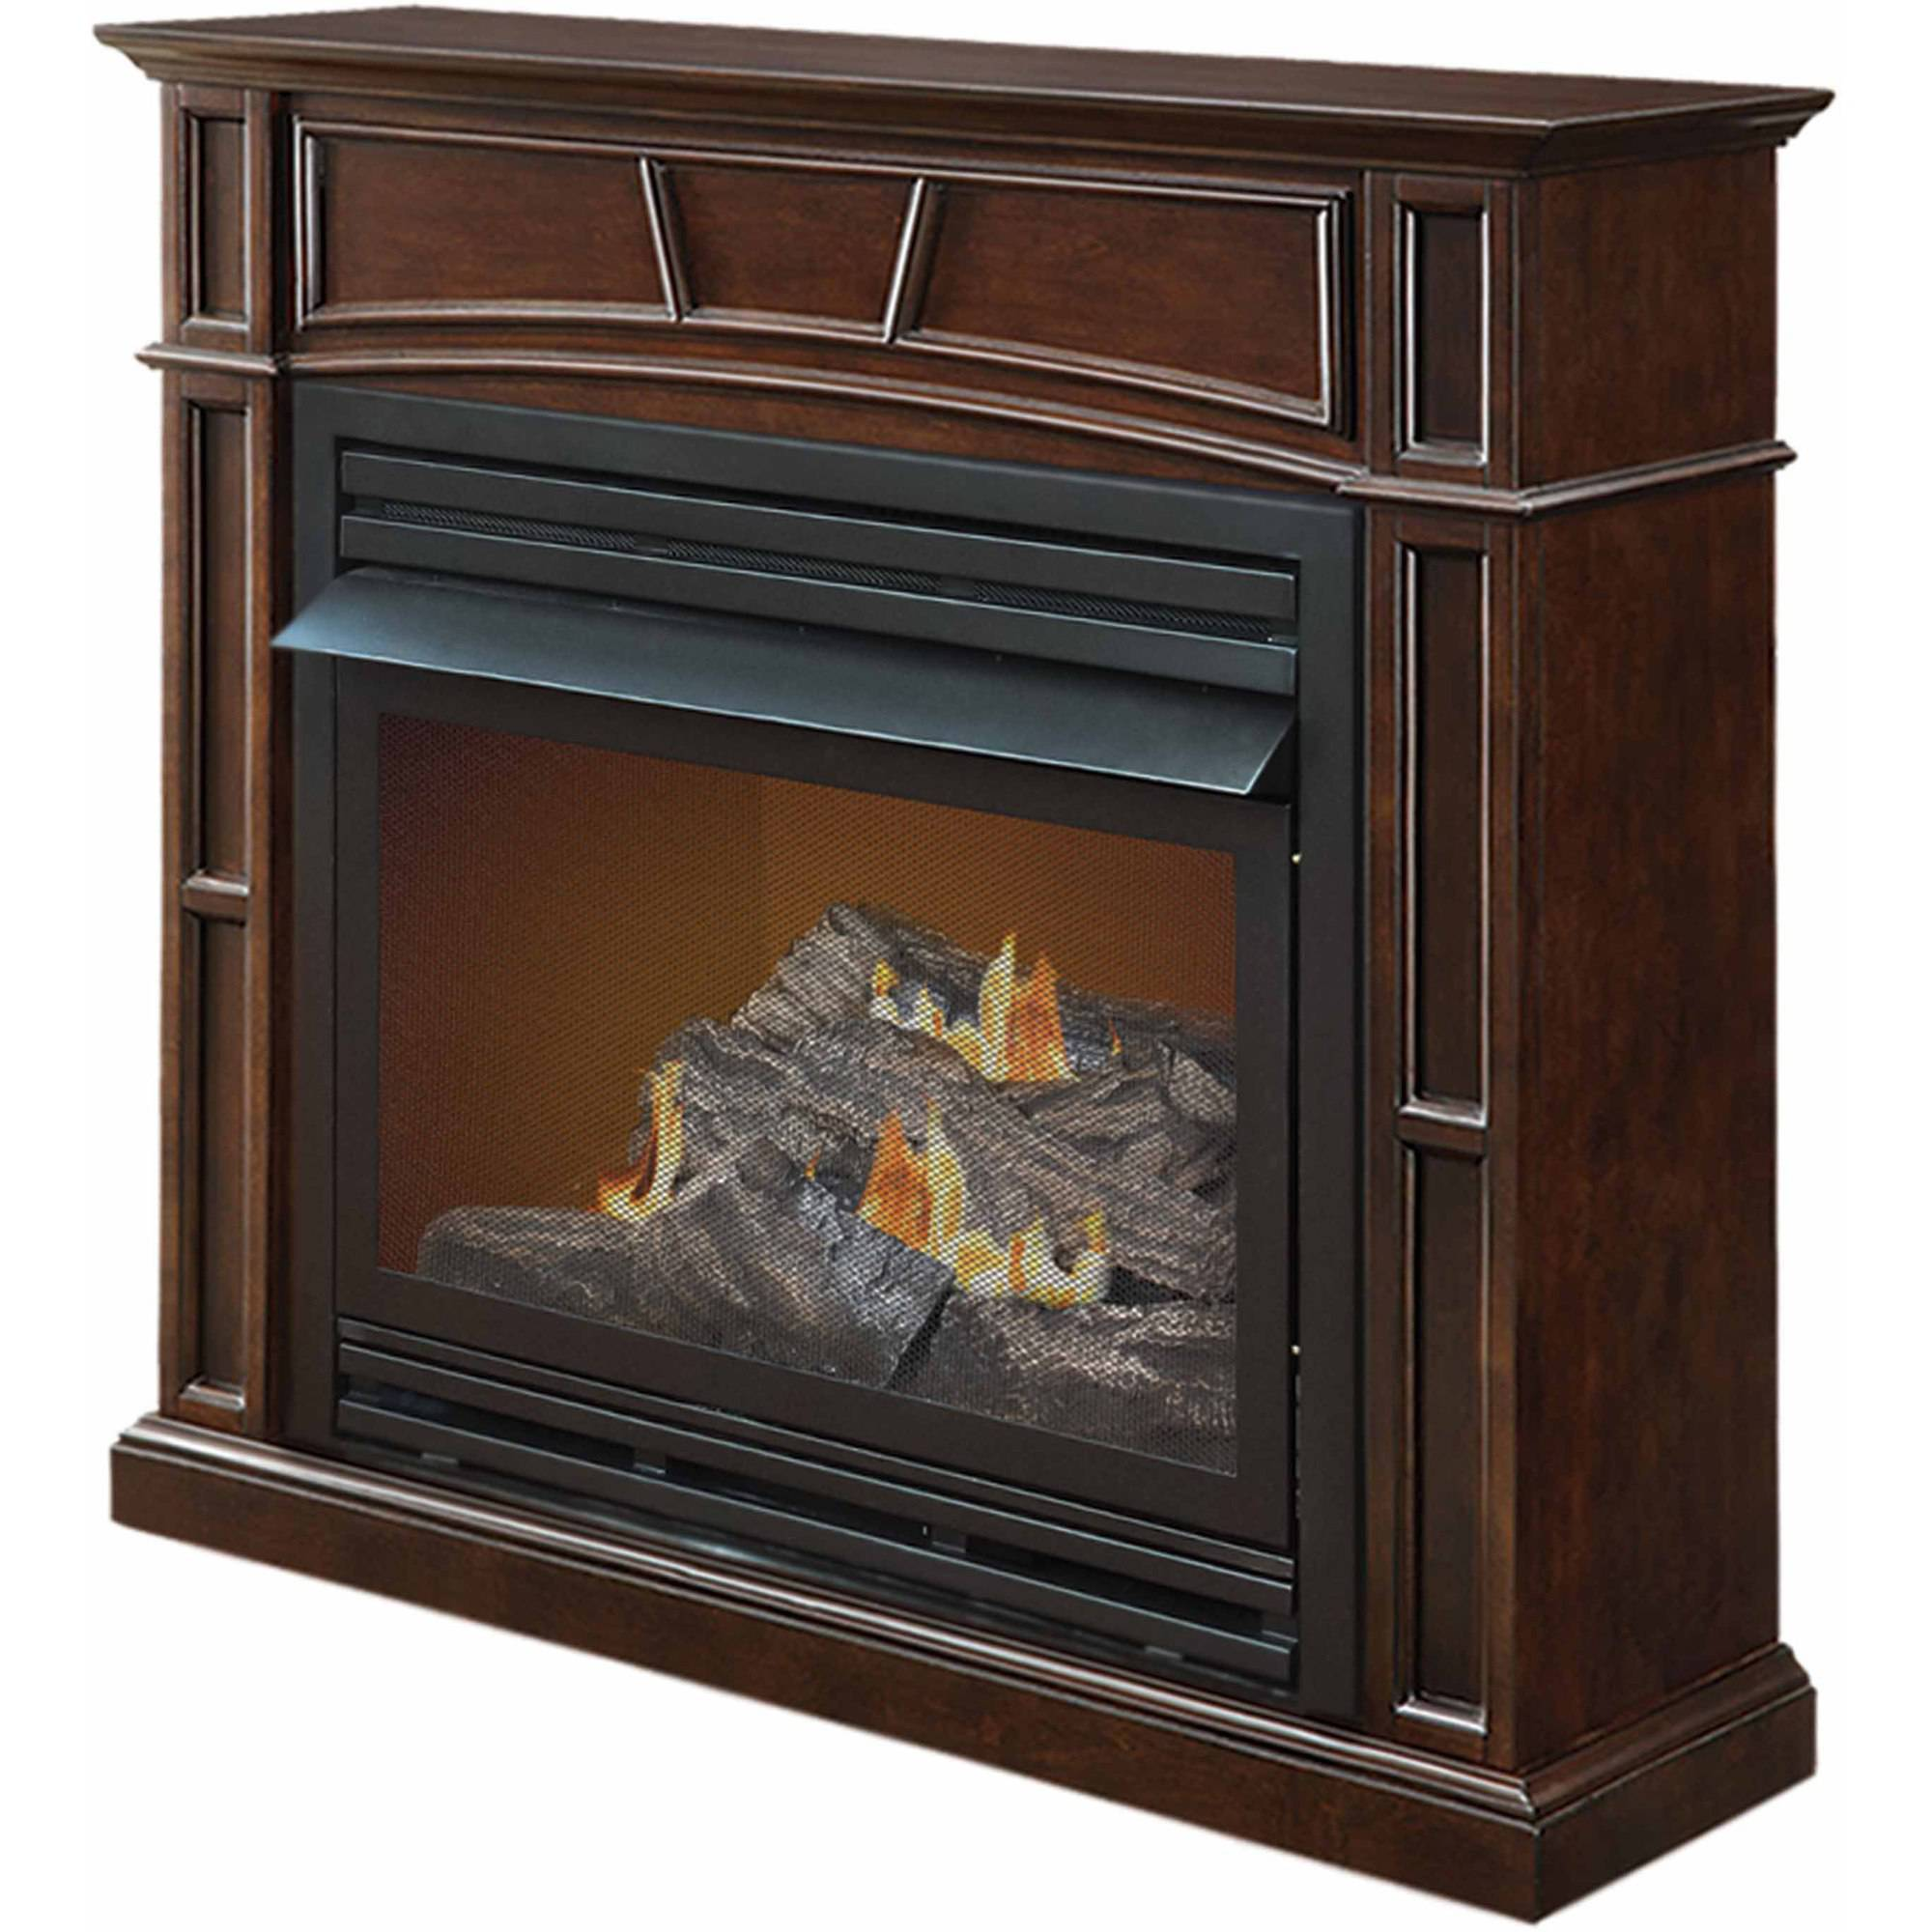 Pleasant Hearth Vff Ph32dr 46 Full Size Tobacco Vent Free Fireplace